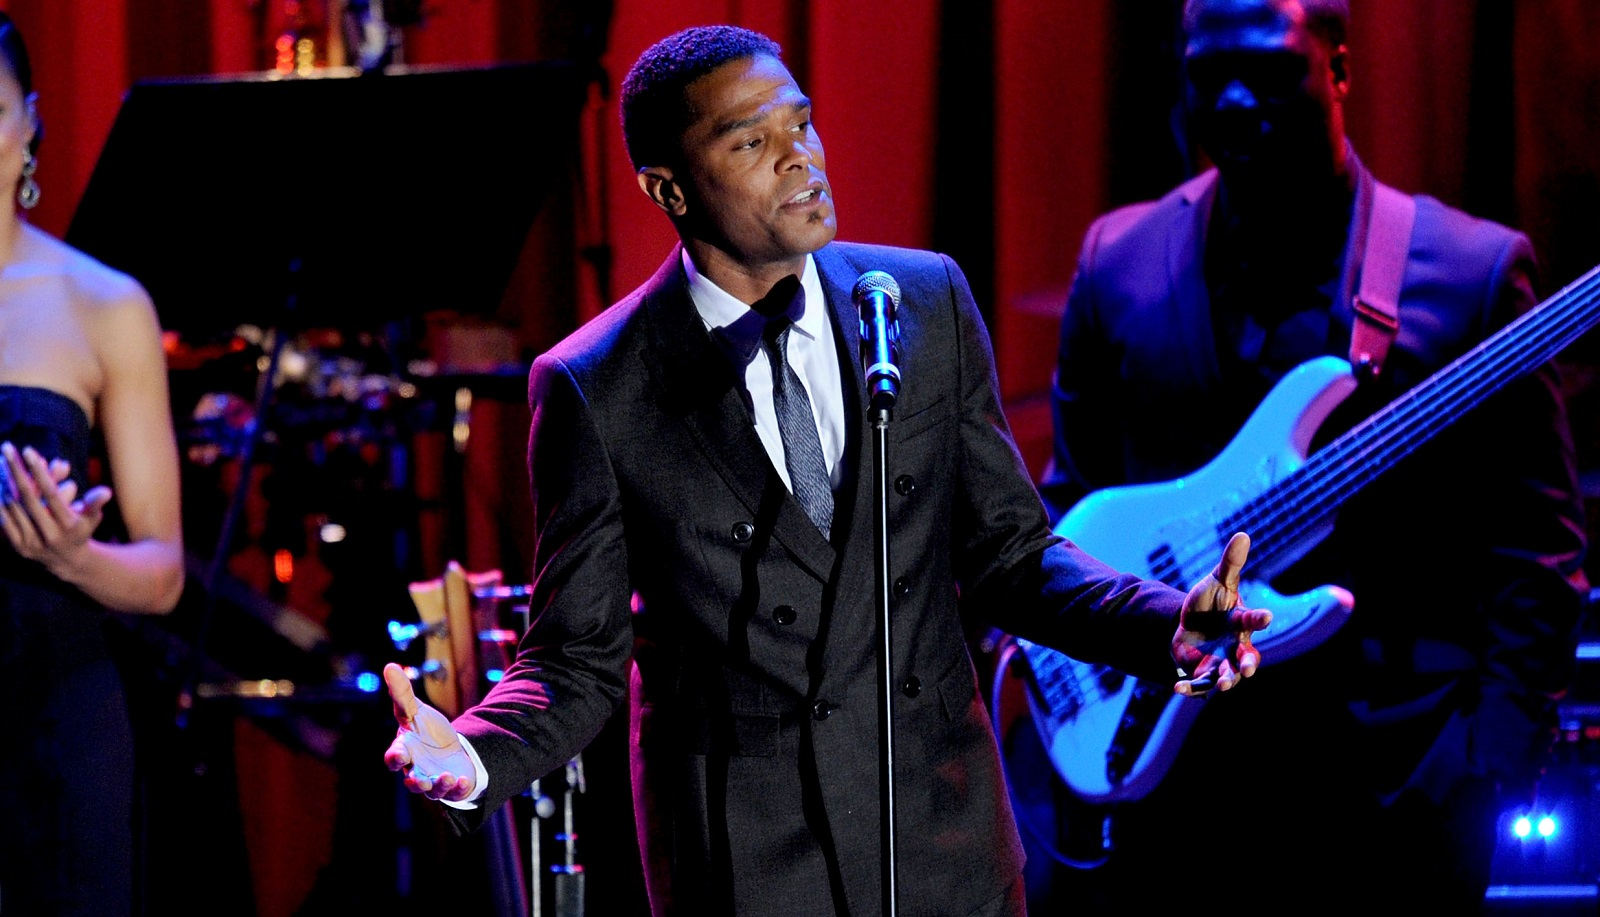 R&B artist Maxwell performs in July in Shea's Performing Arts Center. (Getty Images)